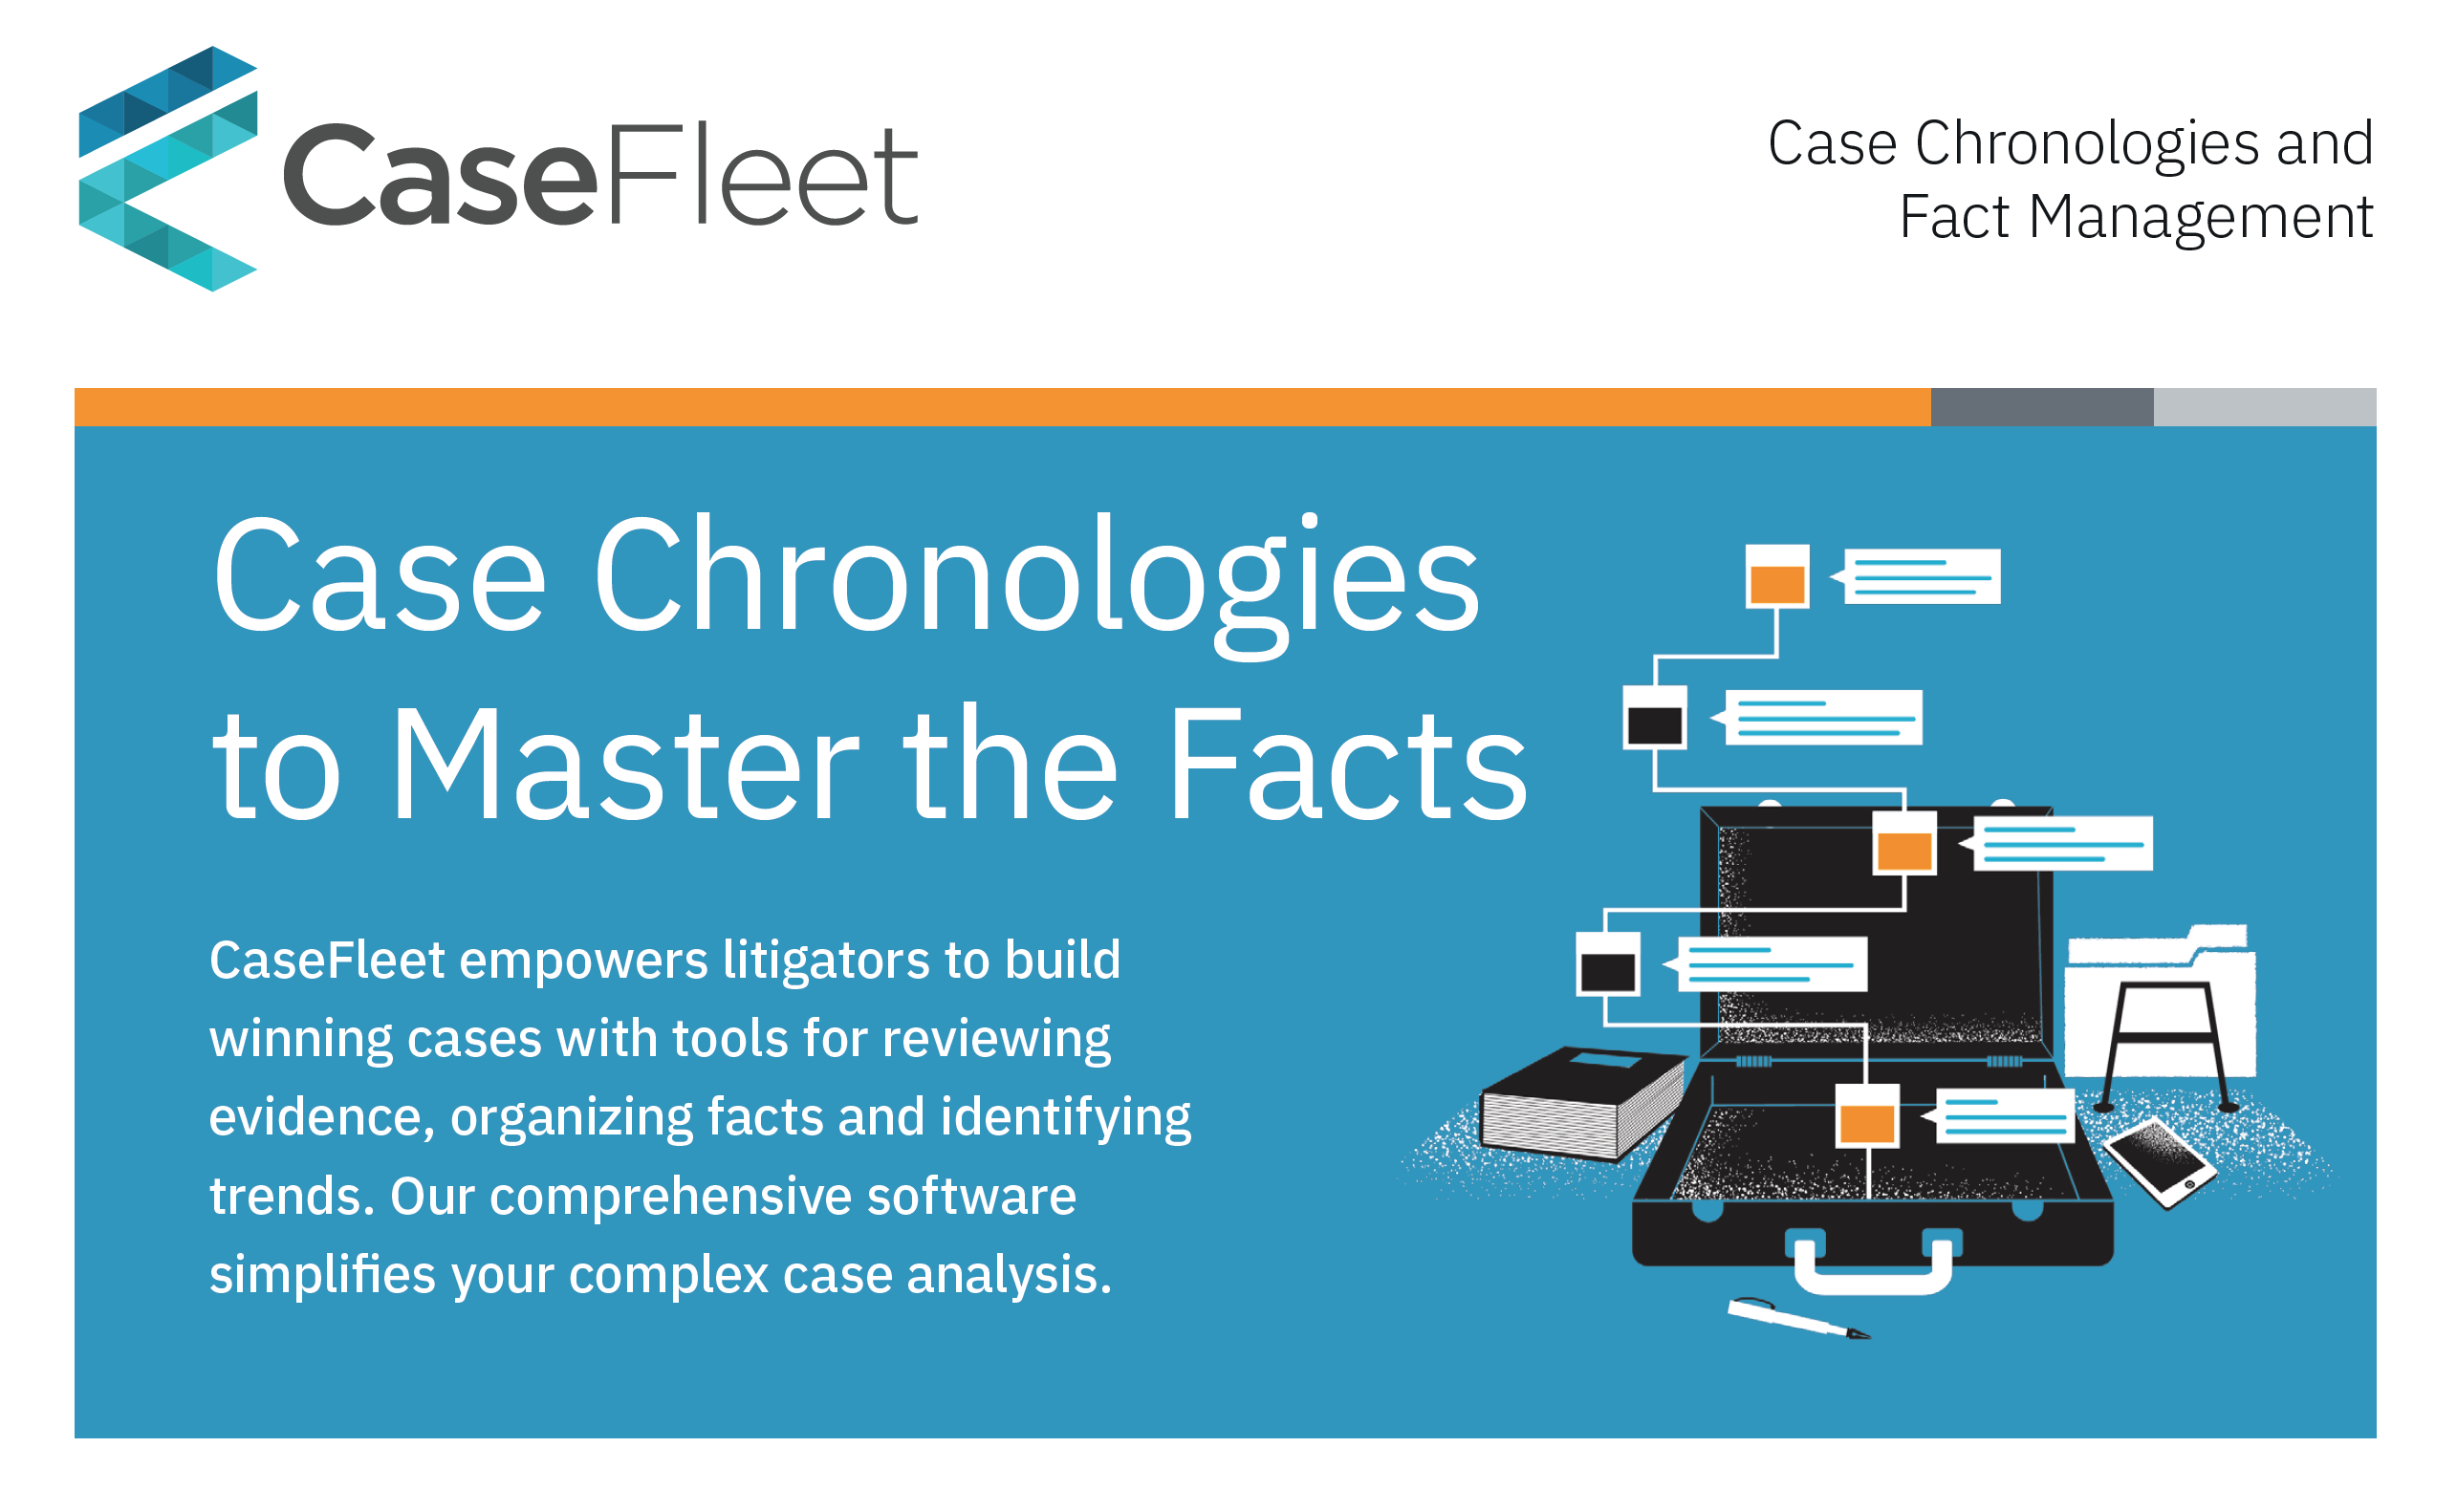 CaseFleet is an innovative, cloud-based case chronology software, designed to help you create a timeline of facts linked directly to the evidence that proves it.